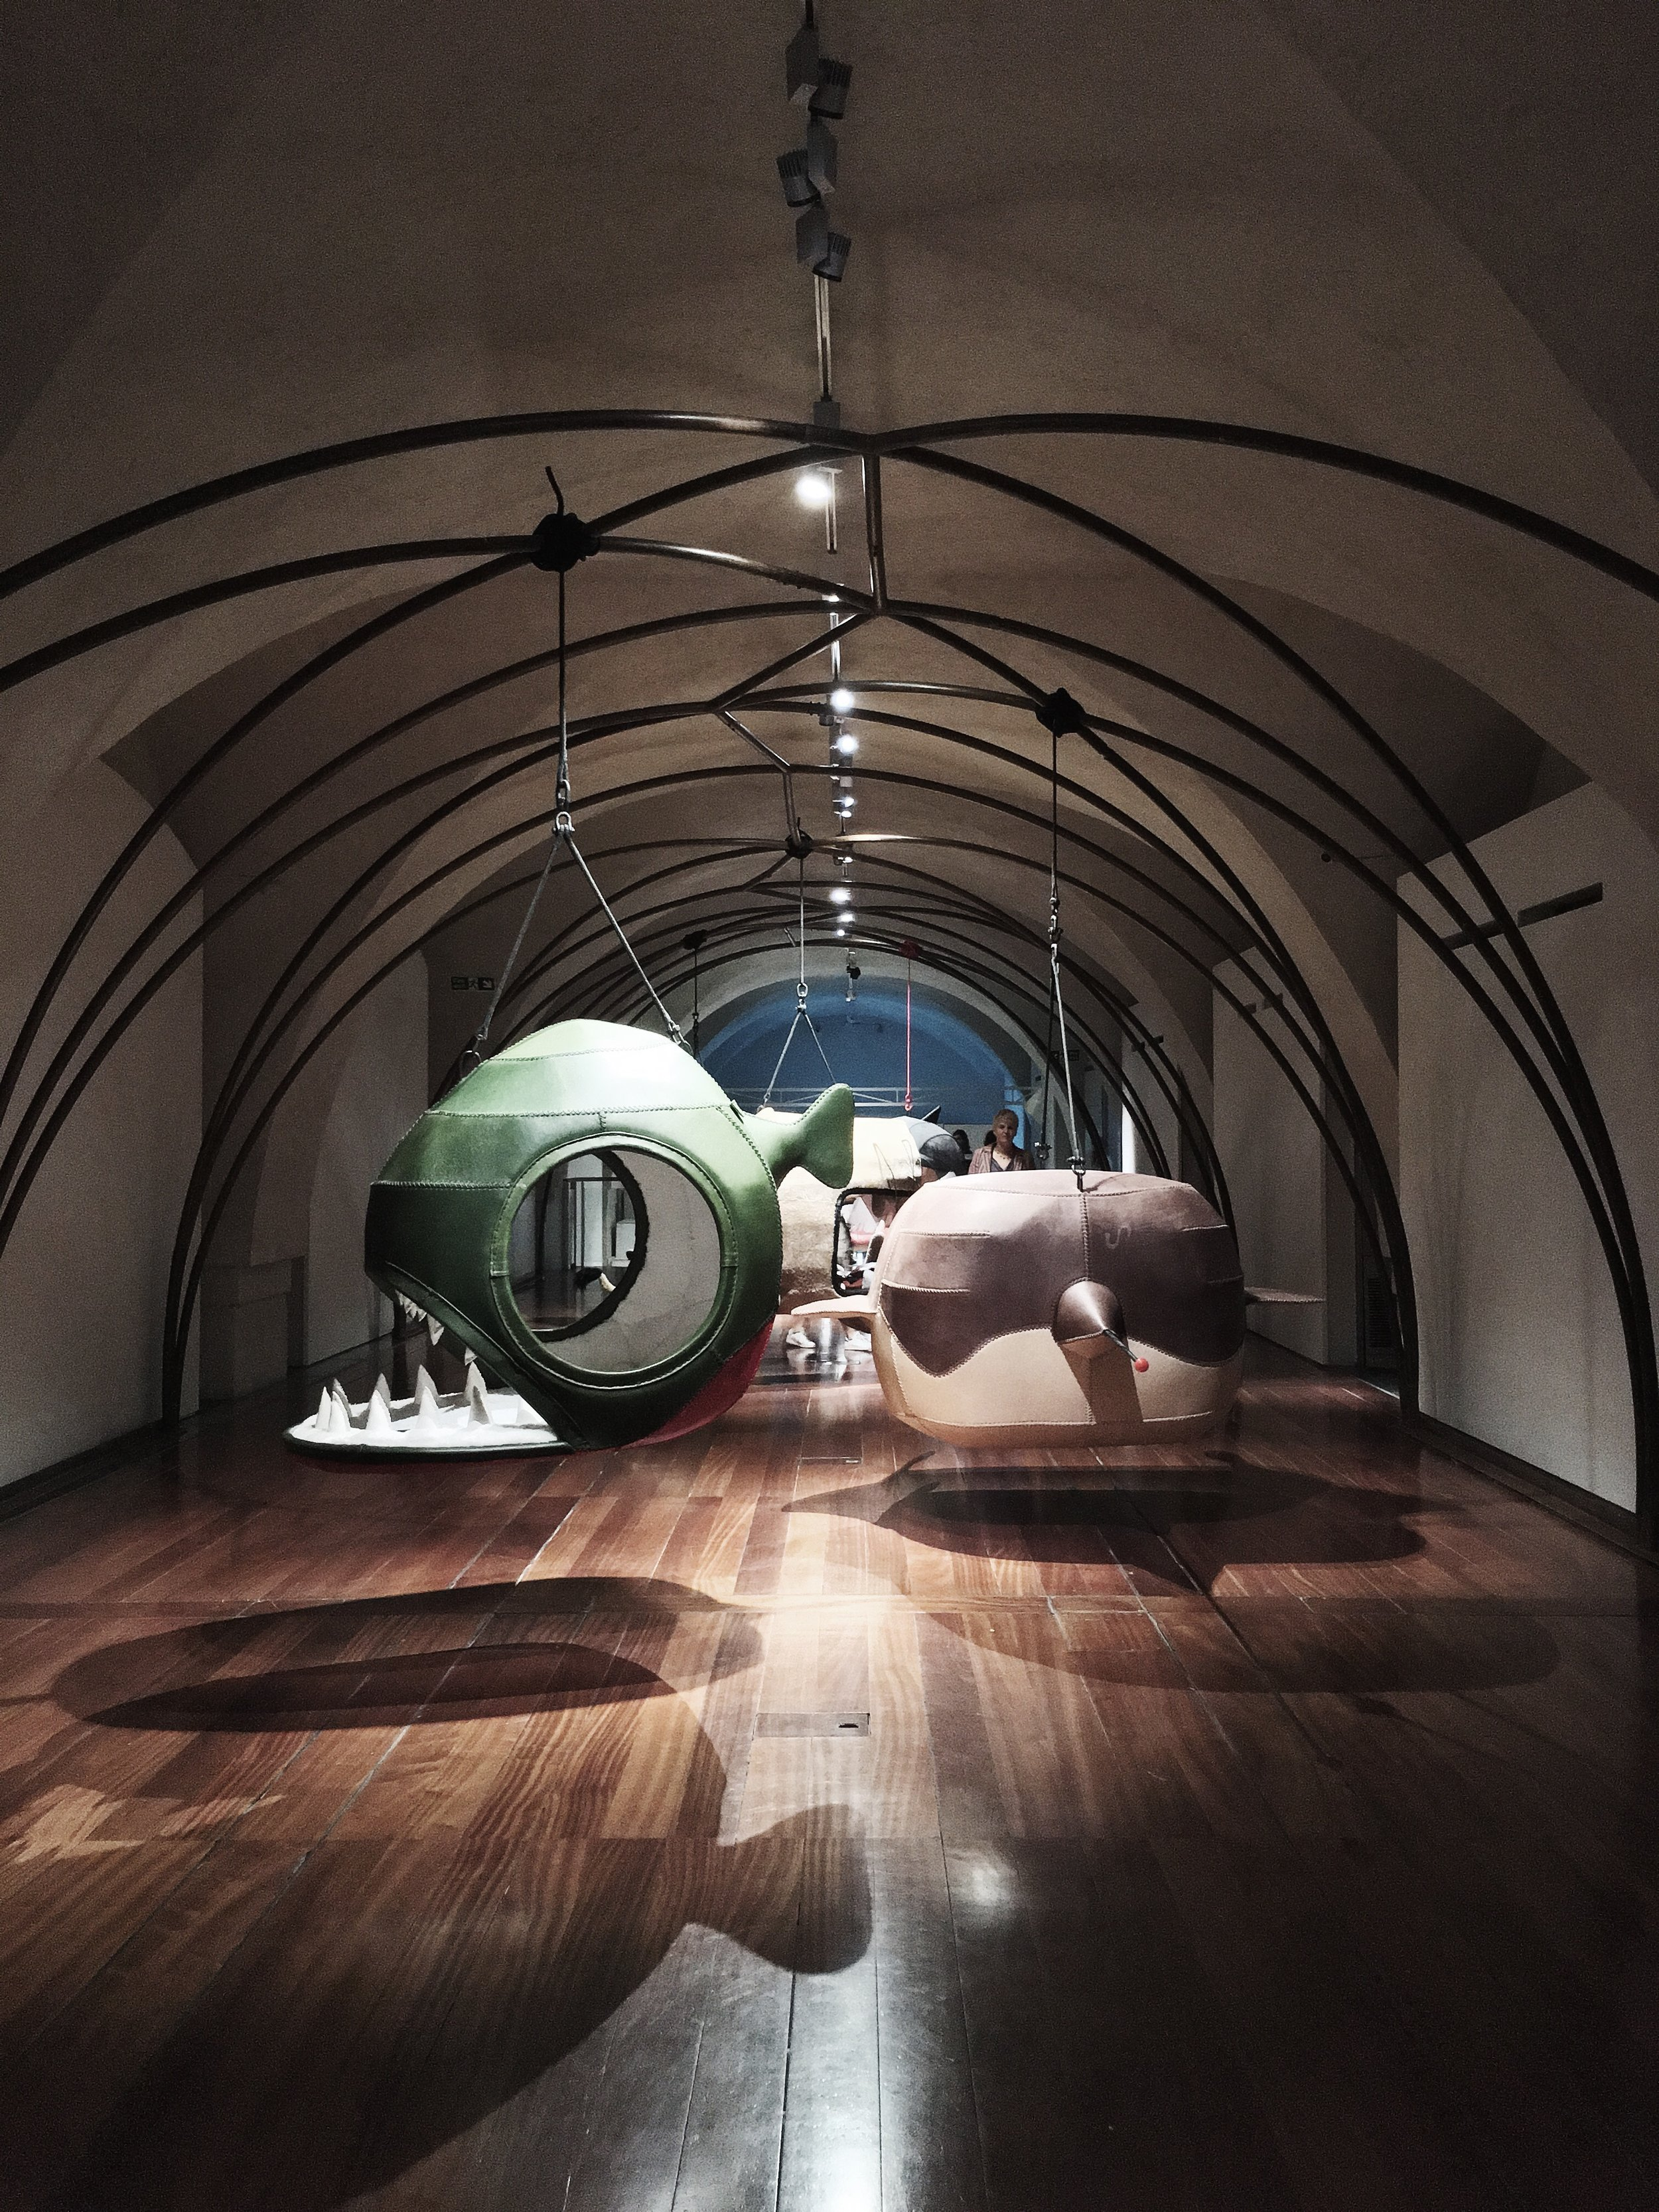 [South Africa, 'Otium and Acedia' designed by Porky Hefer]   Suspended animal nests that celebrate liberation, playfulness, and innocence as a bold statement standing alongside the theme of Utopia, and coming from a country with a complicated and visceral history.